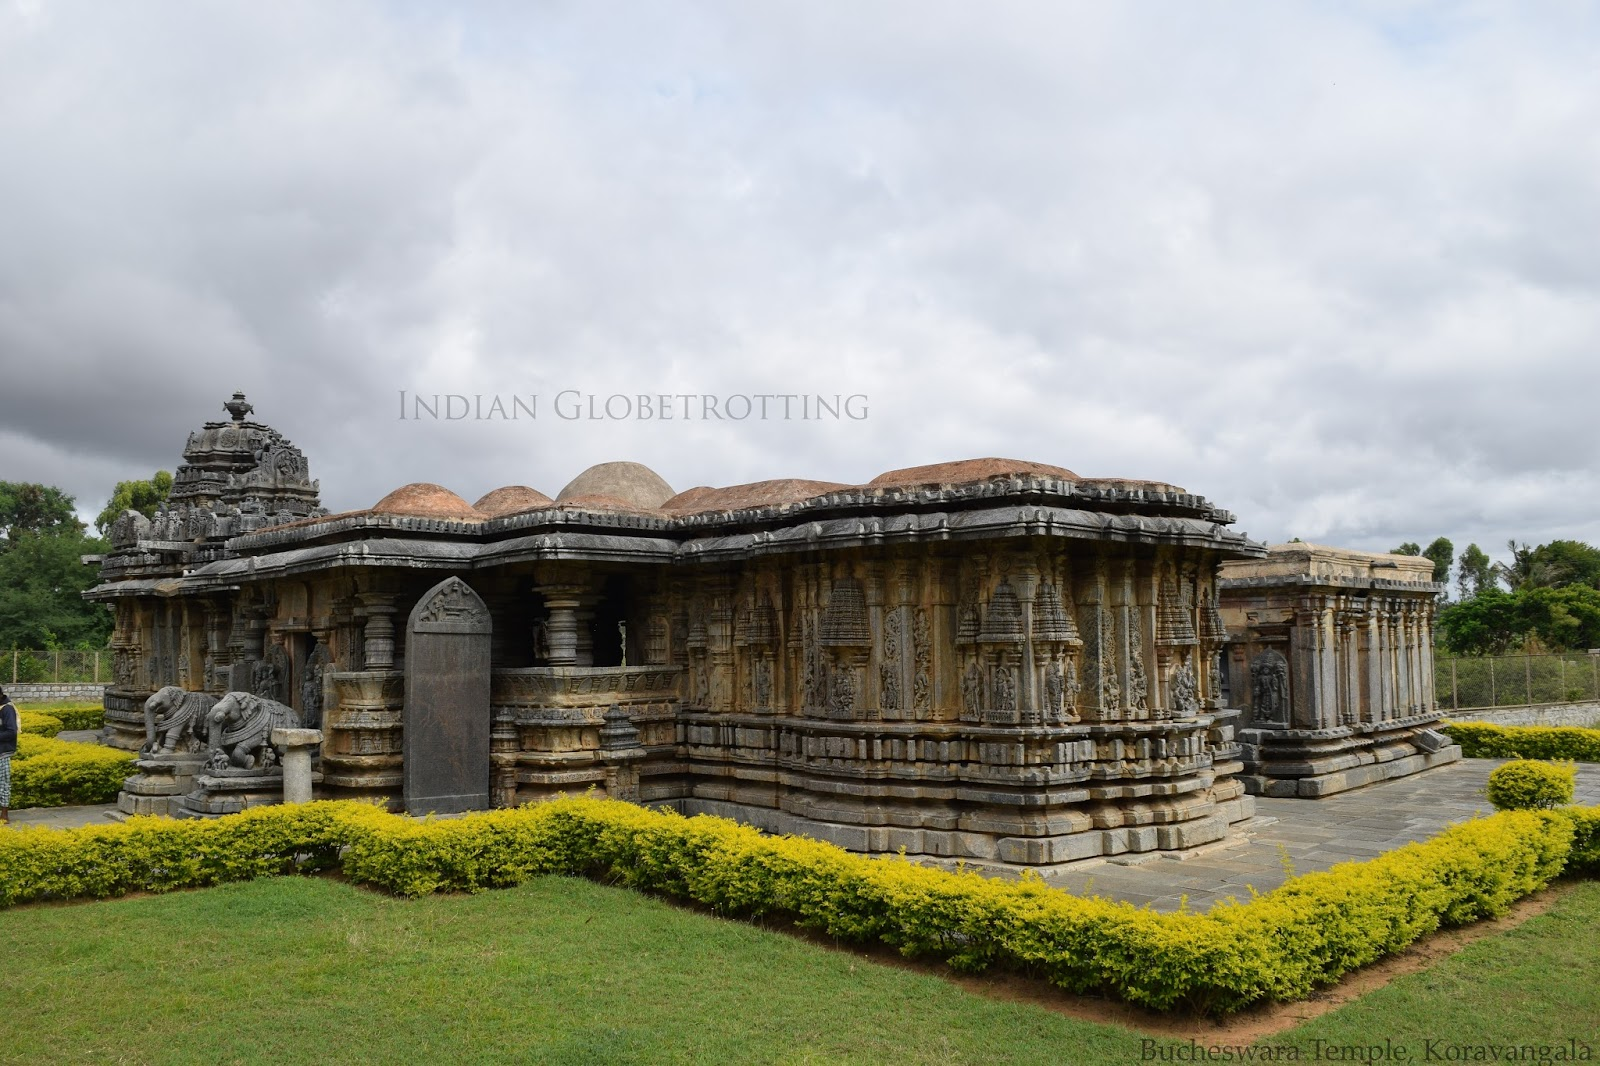 Bucheswara temple in koravangala in karnataka constructed by the hoysala dynasty